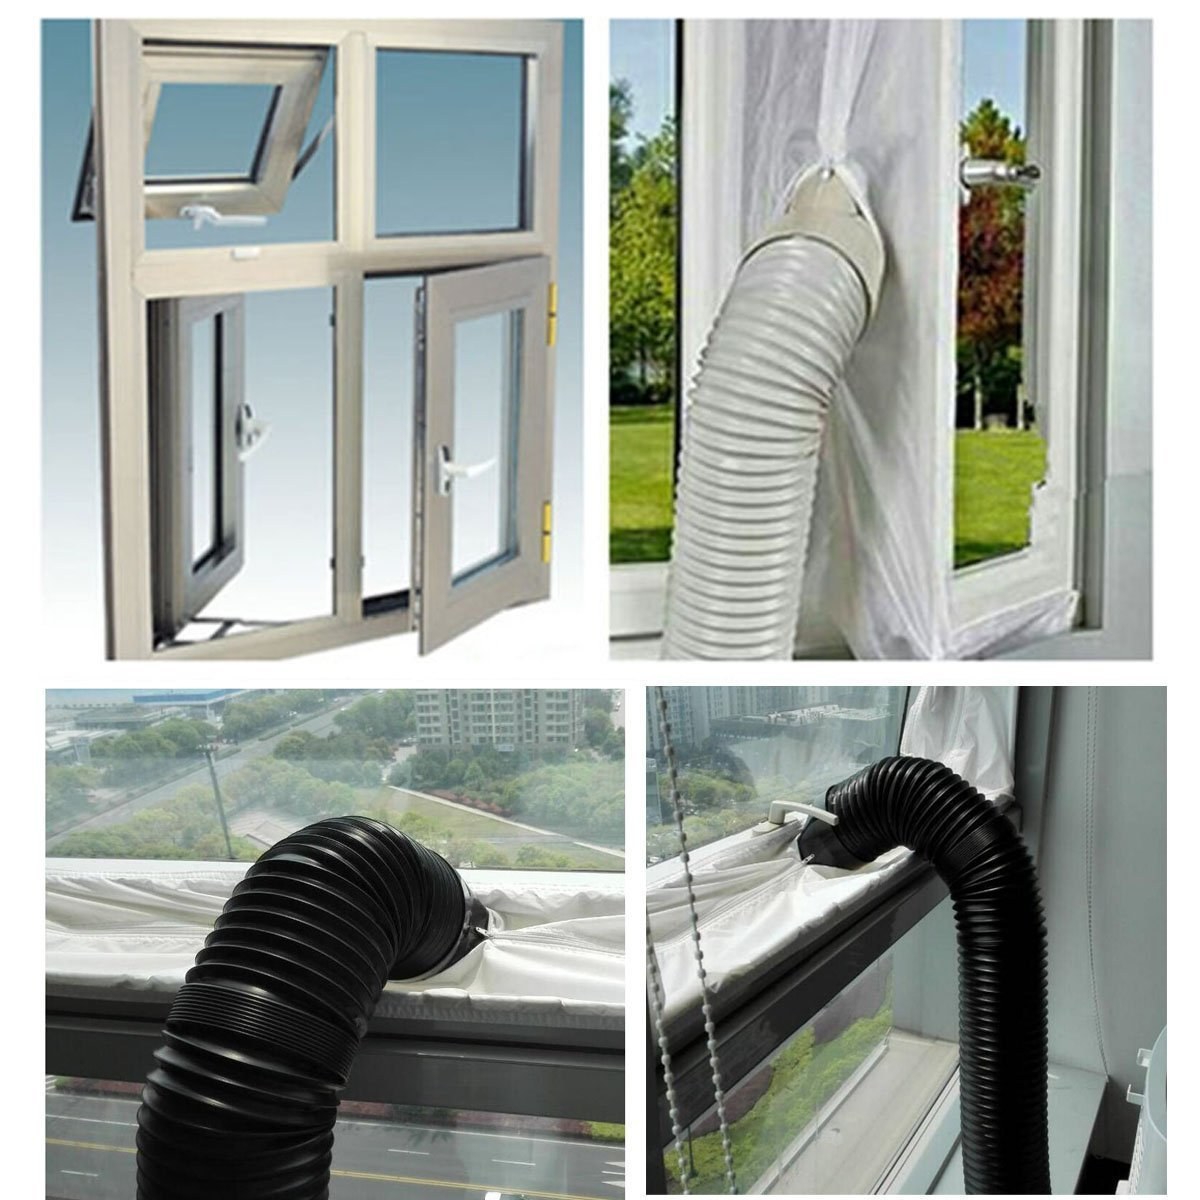 Samantha Universal AirLock Window Seal for Mobile Air-Conditioning Units And Tumble Dryer